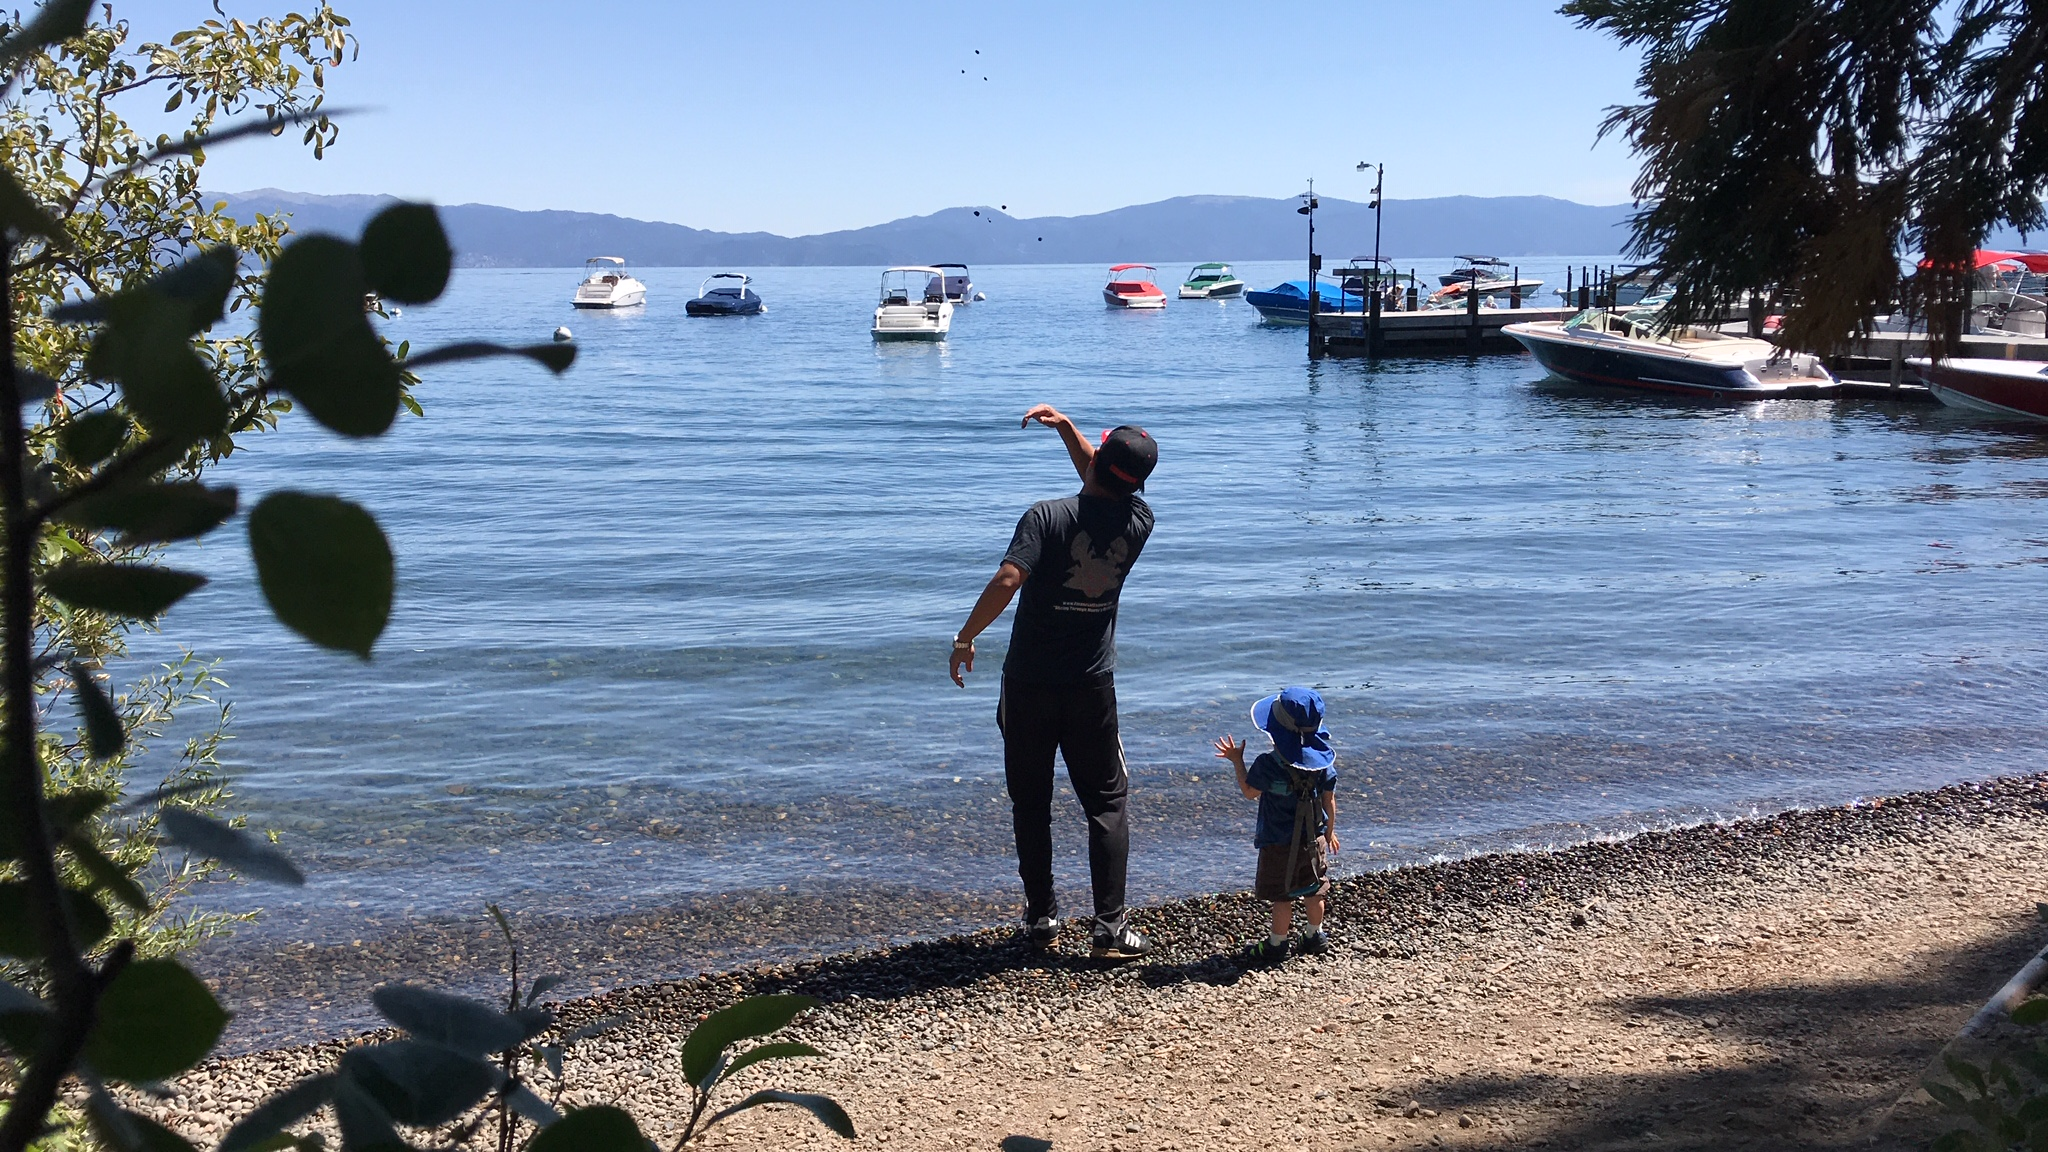 Lake Tahoe Vacation Property With Financial Samurai And Son